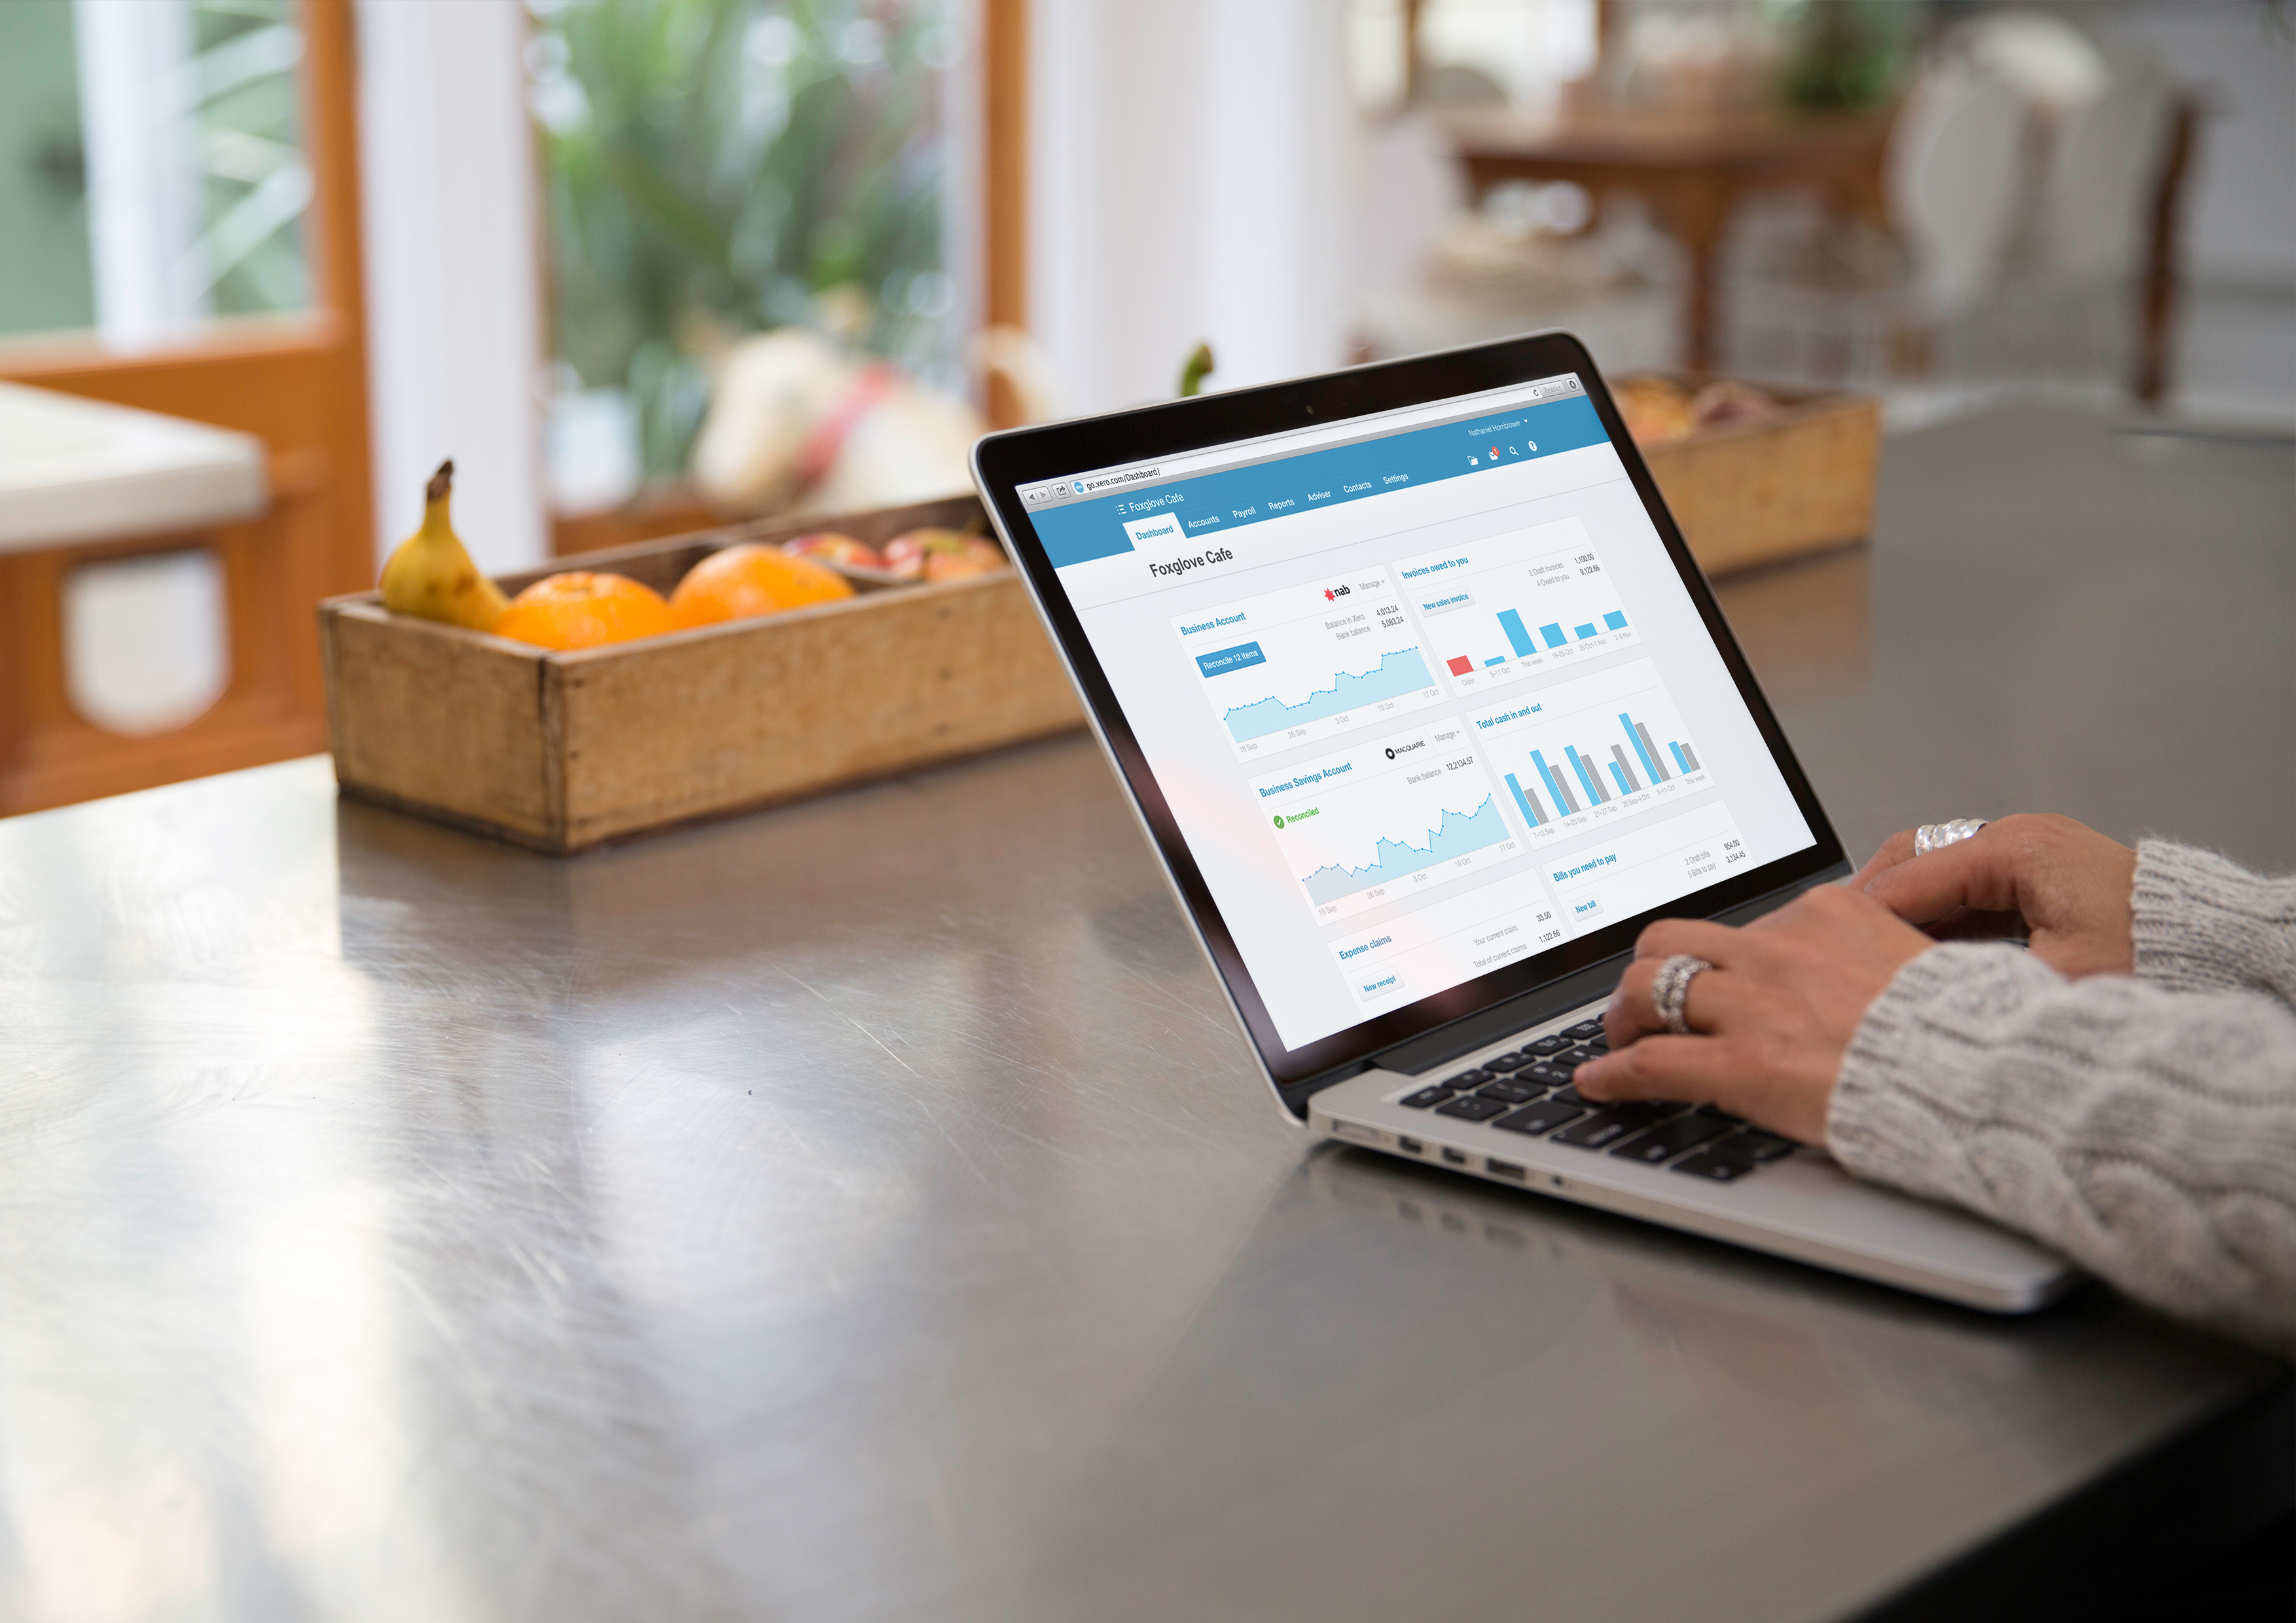 What You Could be Missing by Glossing Over Your Financial Reports